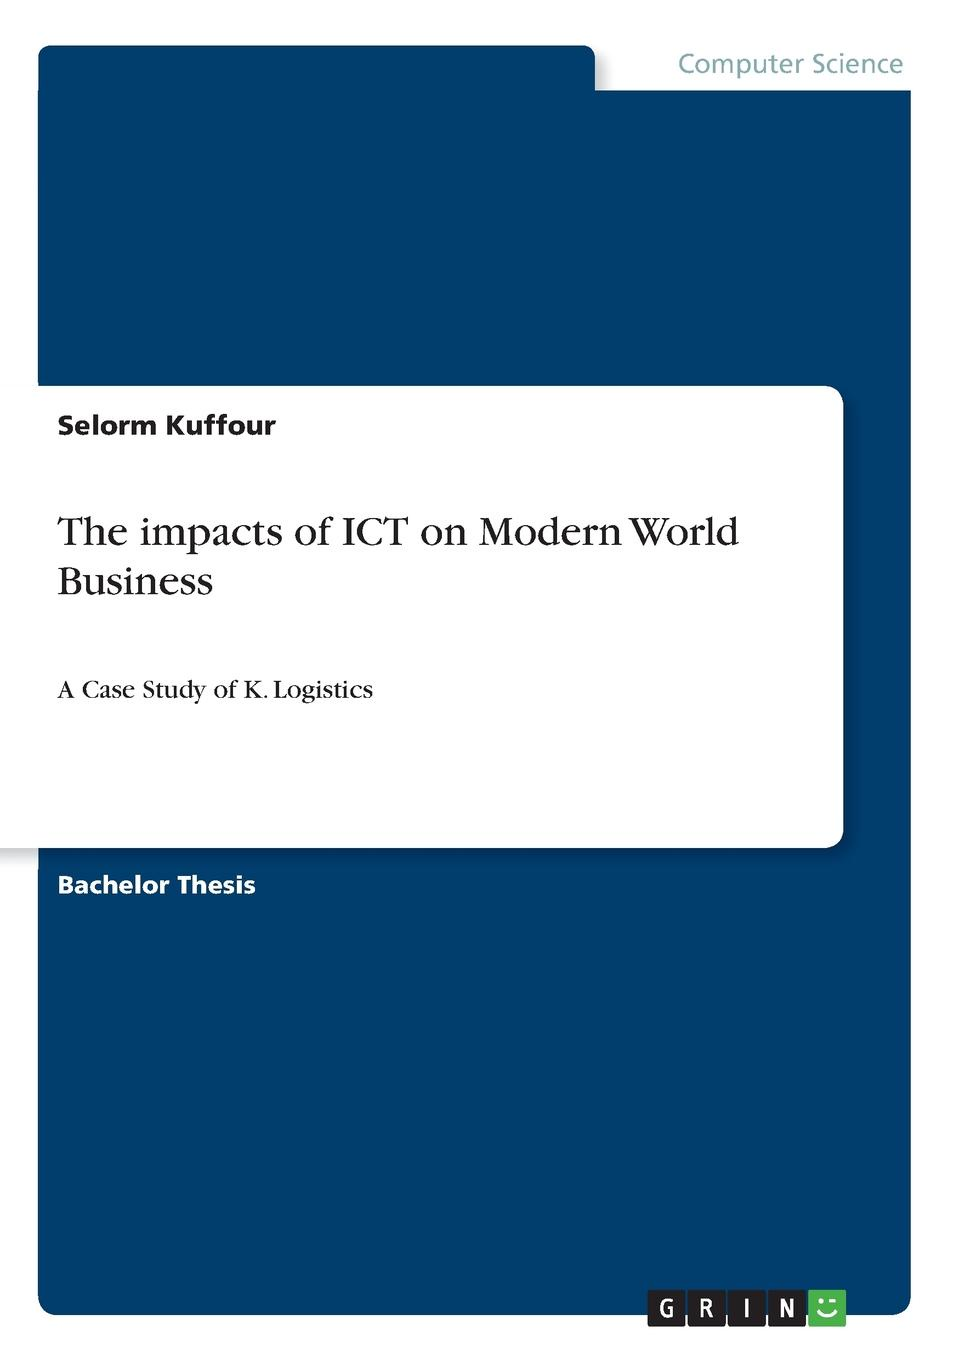 Selorm Kuffour The impacts of ICT on Modern World Business ayoub kafyulilo practical use of ict in science and mathematics teachers training at duce